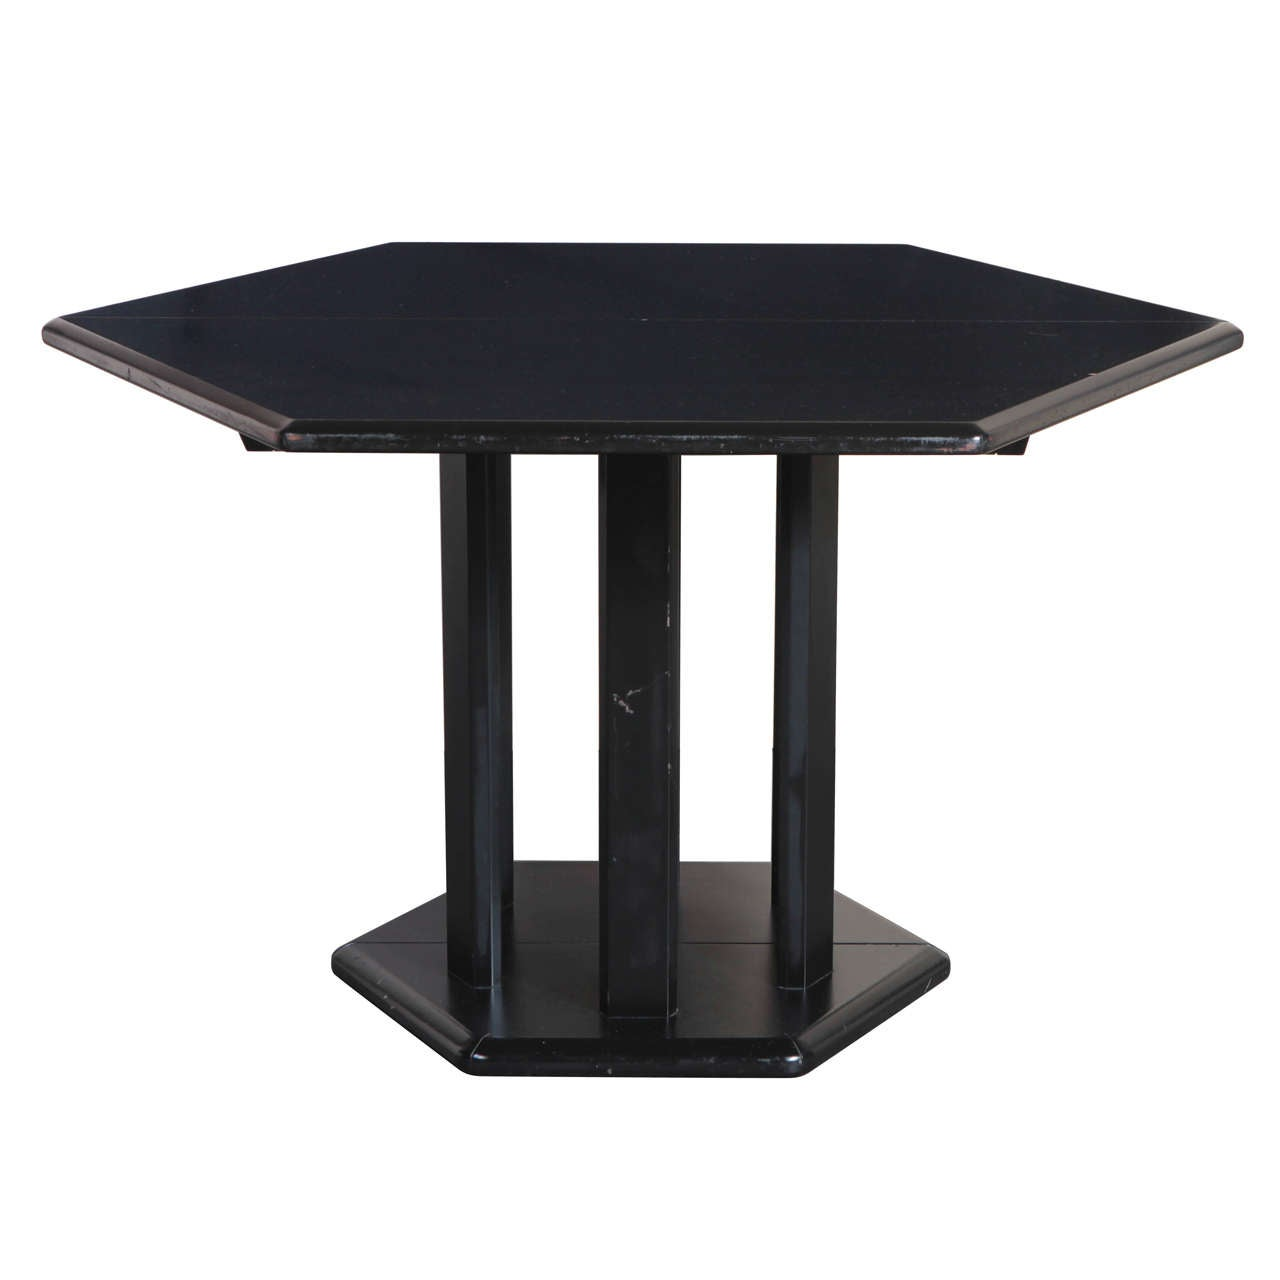 Rare thonet table at 1stdibs for Table thonet